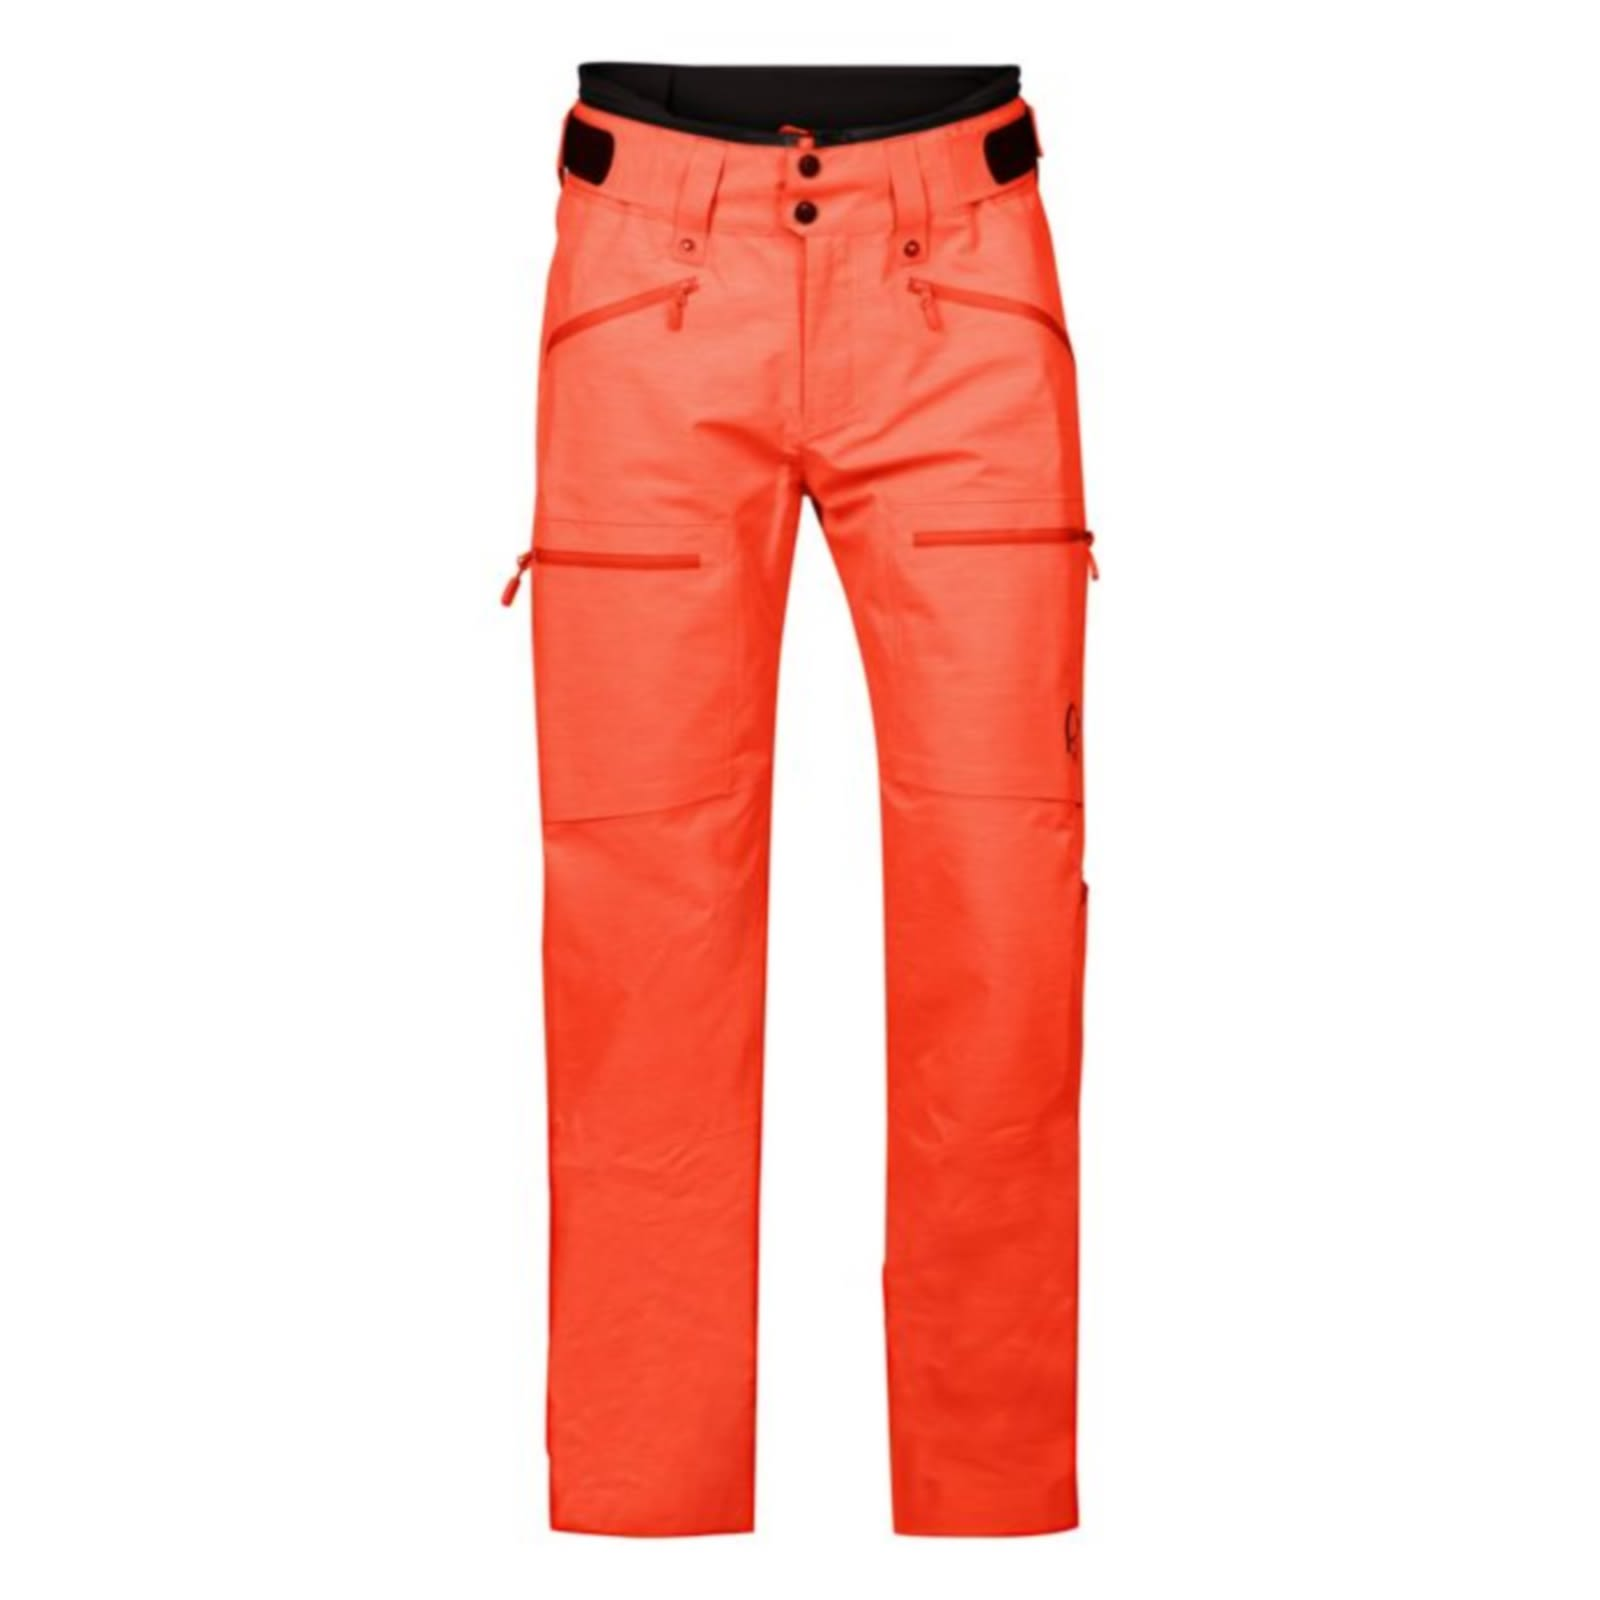 68f10359 Buy Norrøna røldal Gore-Tex Pants (W) from Outnorth